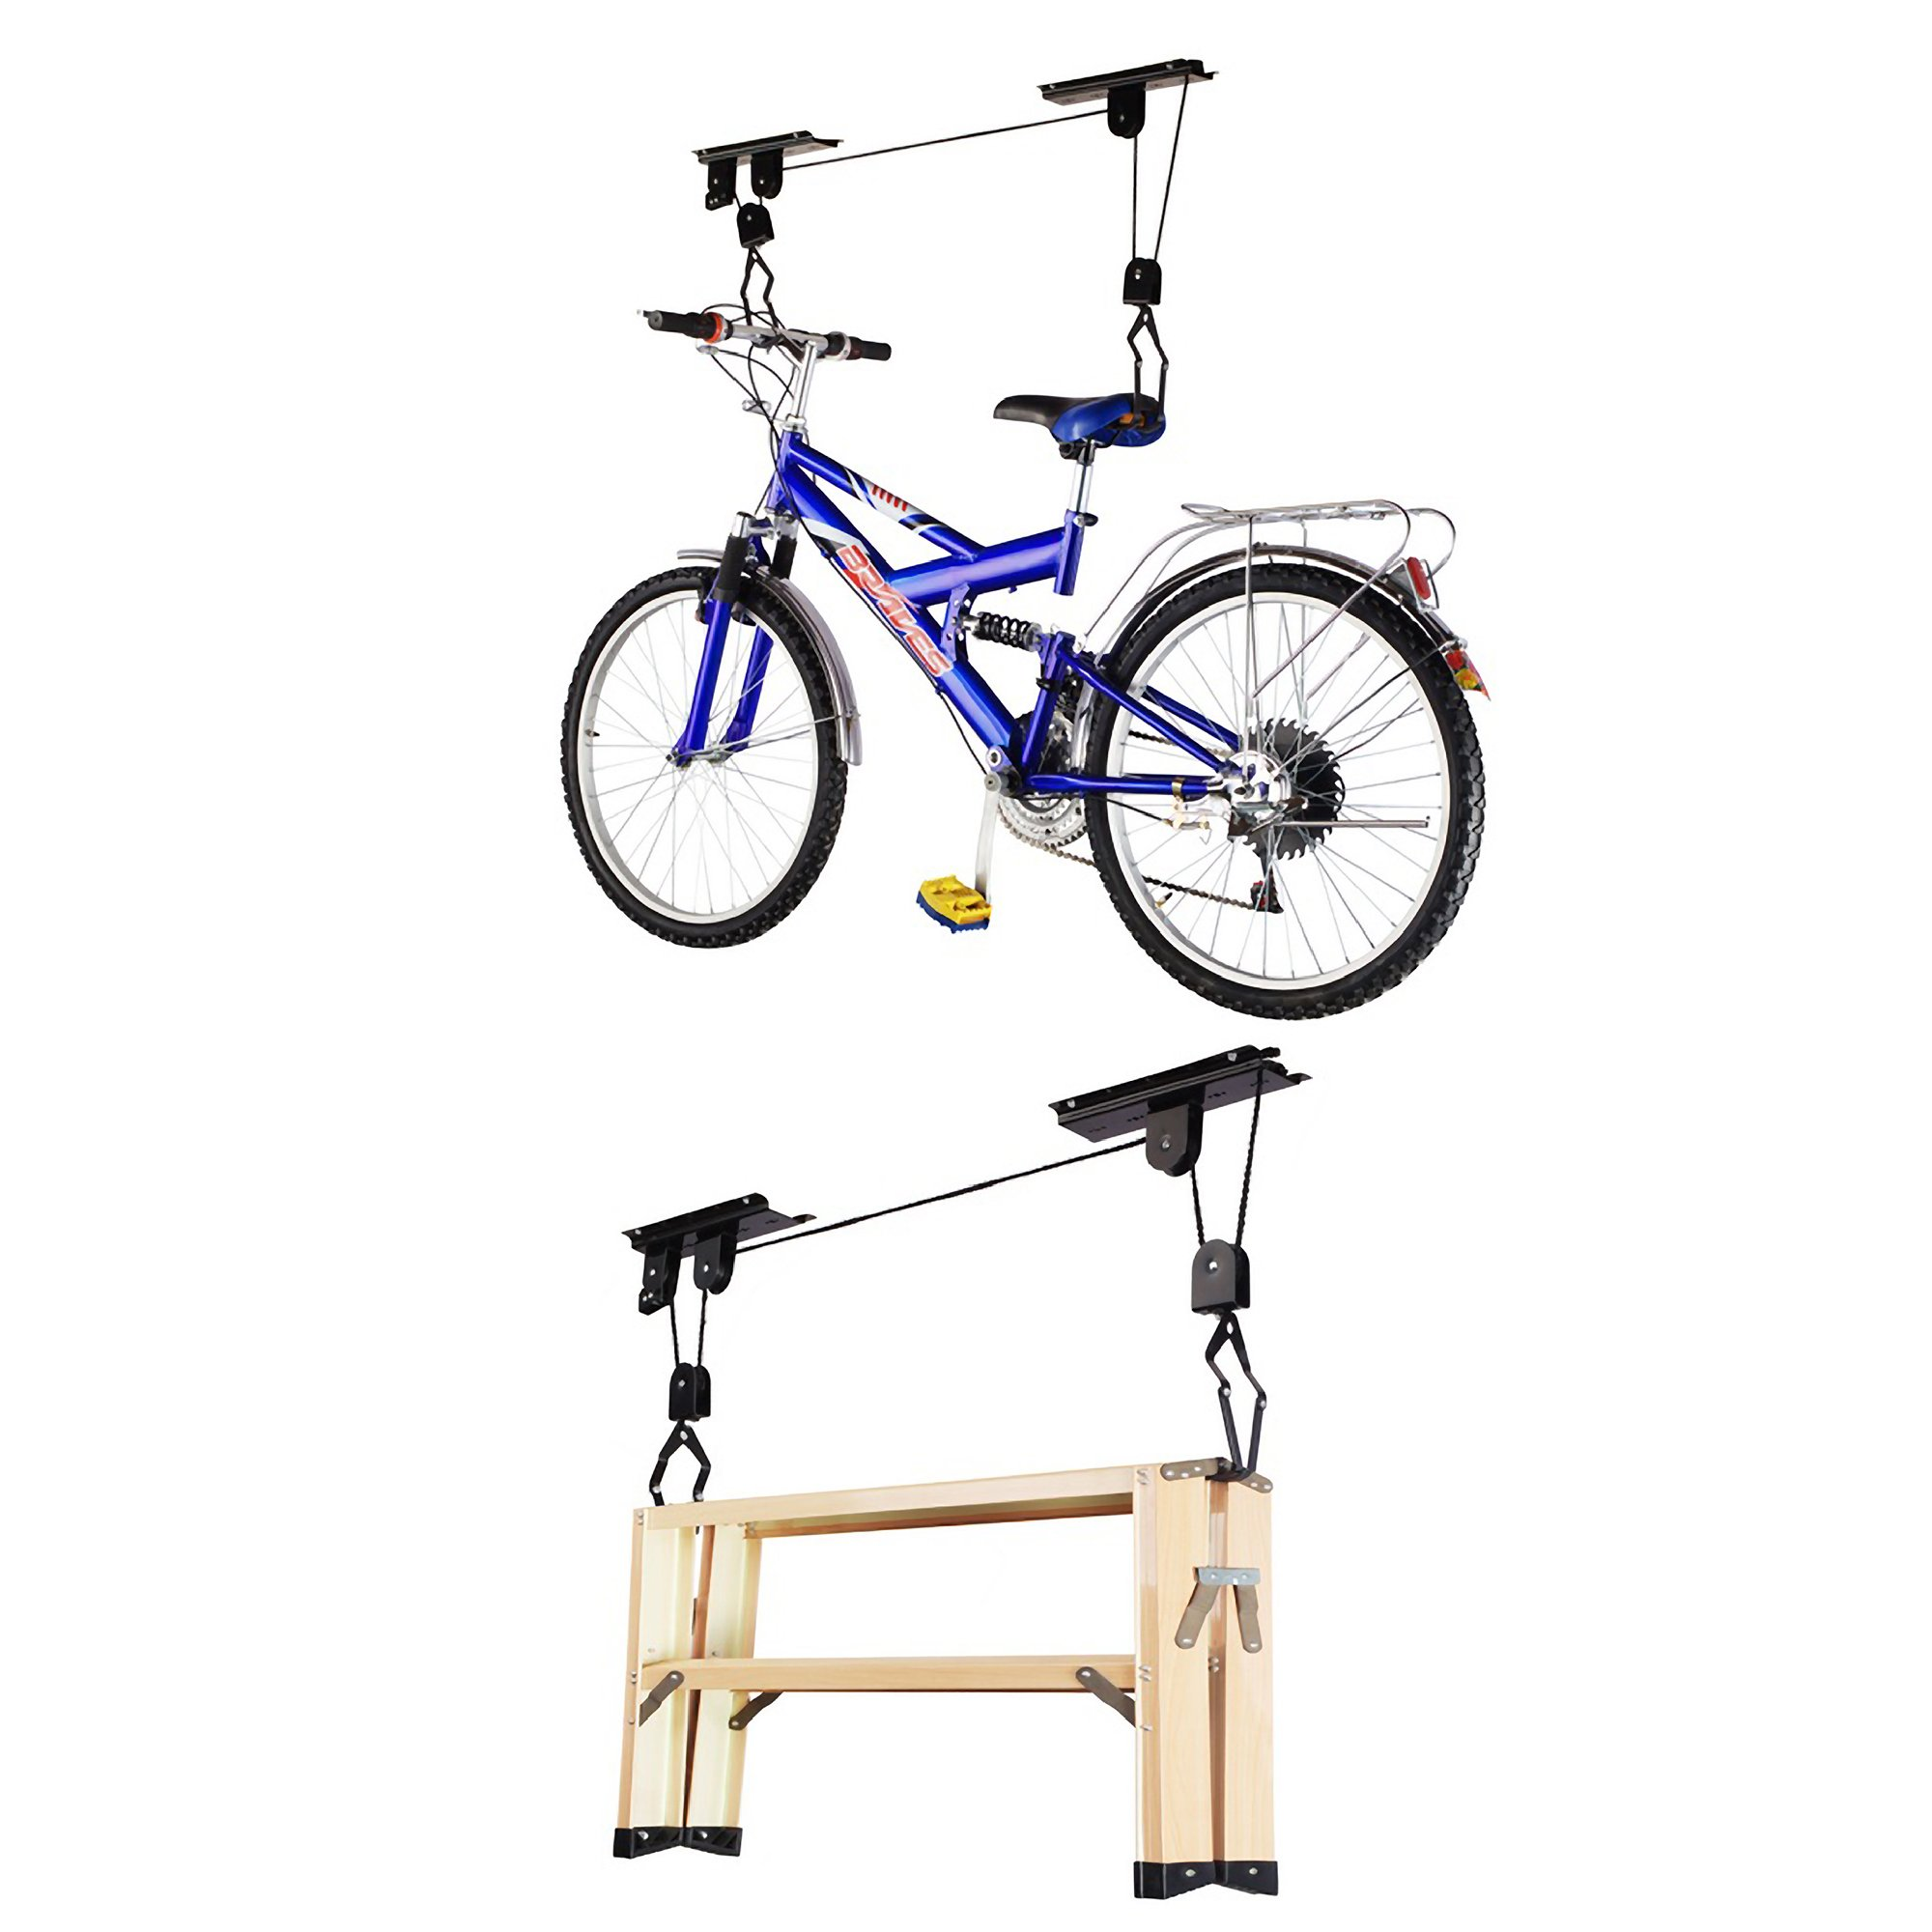 RAD Sportz Bicycle Hoist 4-Pack Quality Garage Storage Bike Lift with 100 lb Capacity Even Works as Ladder Lift Premium Quality by RAD Cycle Products (Image #2)